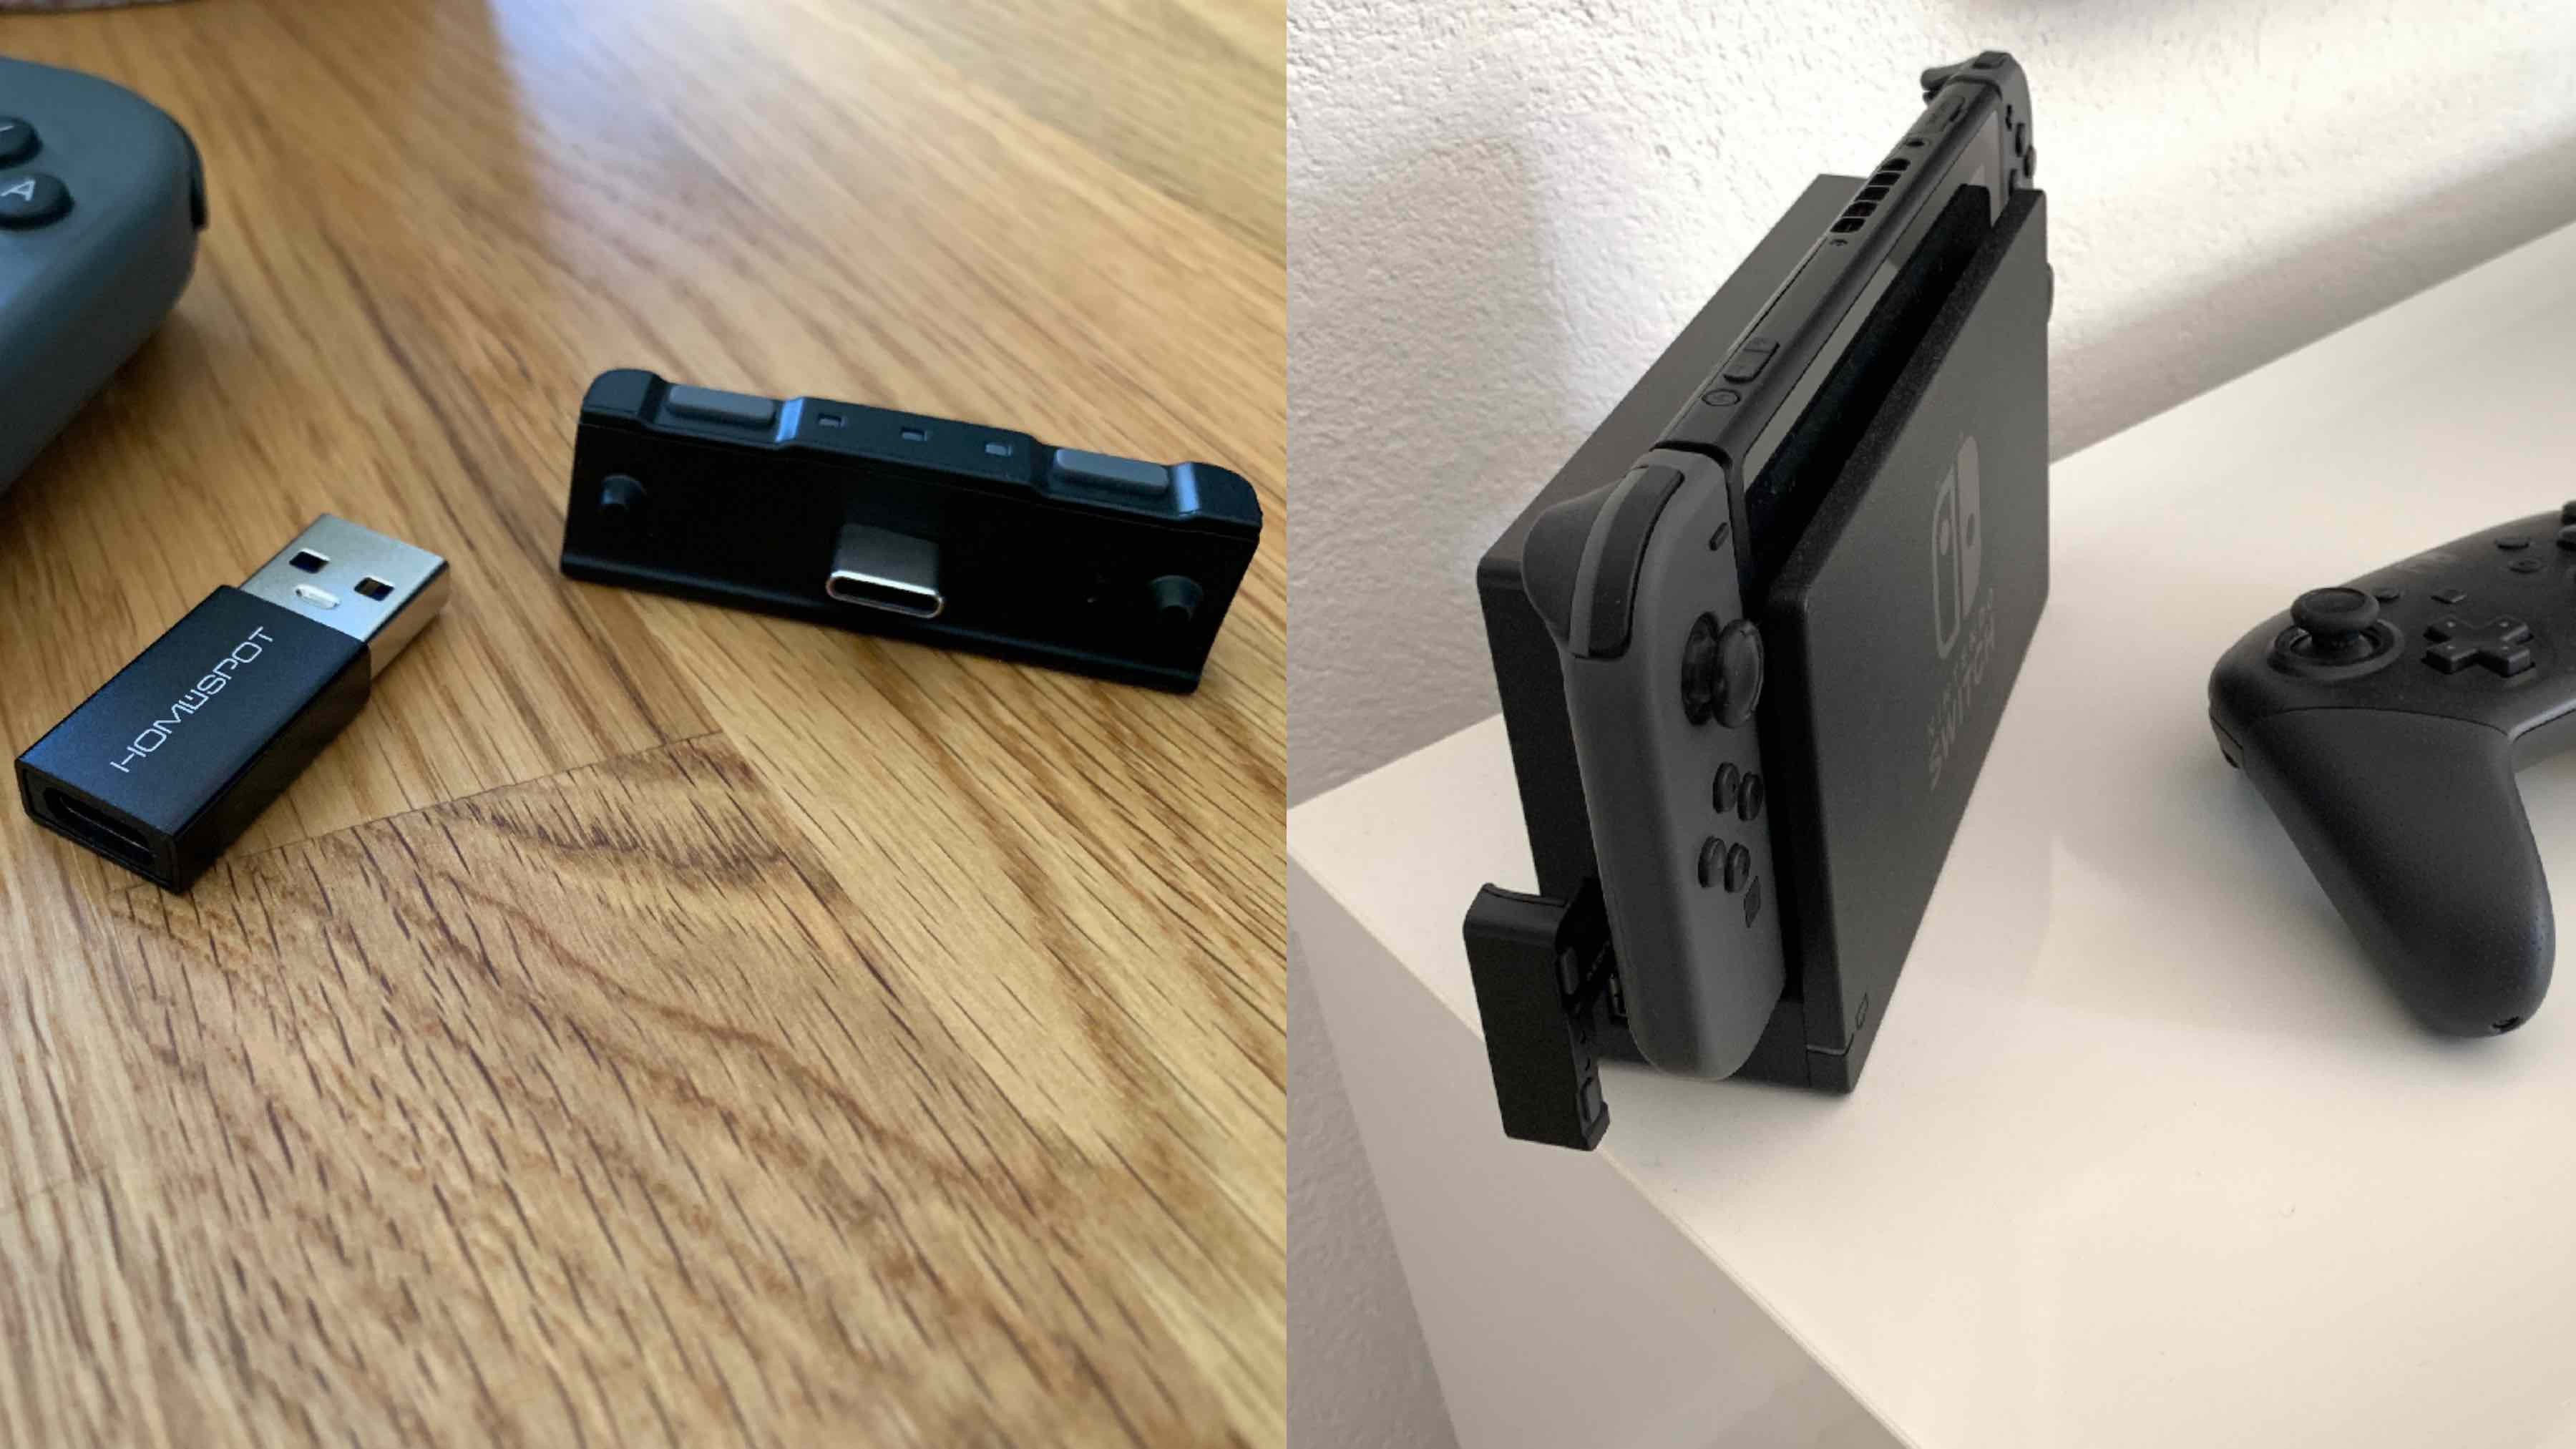 Homespot_Nintendo_Switch_Apple_AirPods_Bluetooth_Adapter2 HomeSpot - verbinde deine AirPods mit deiner Nintendo Switch